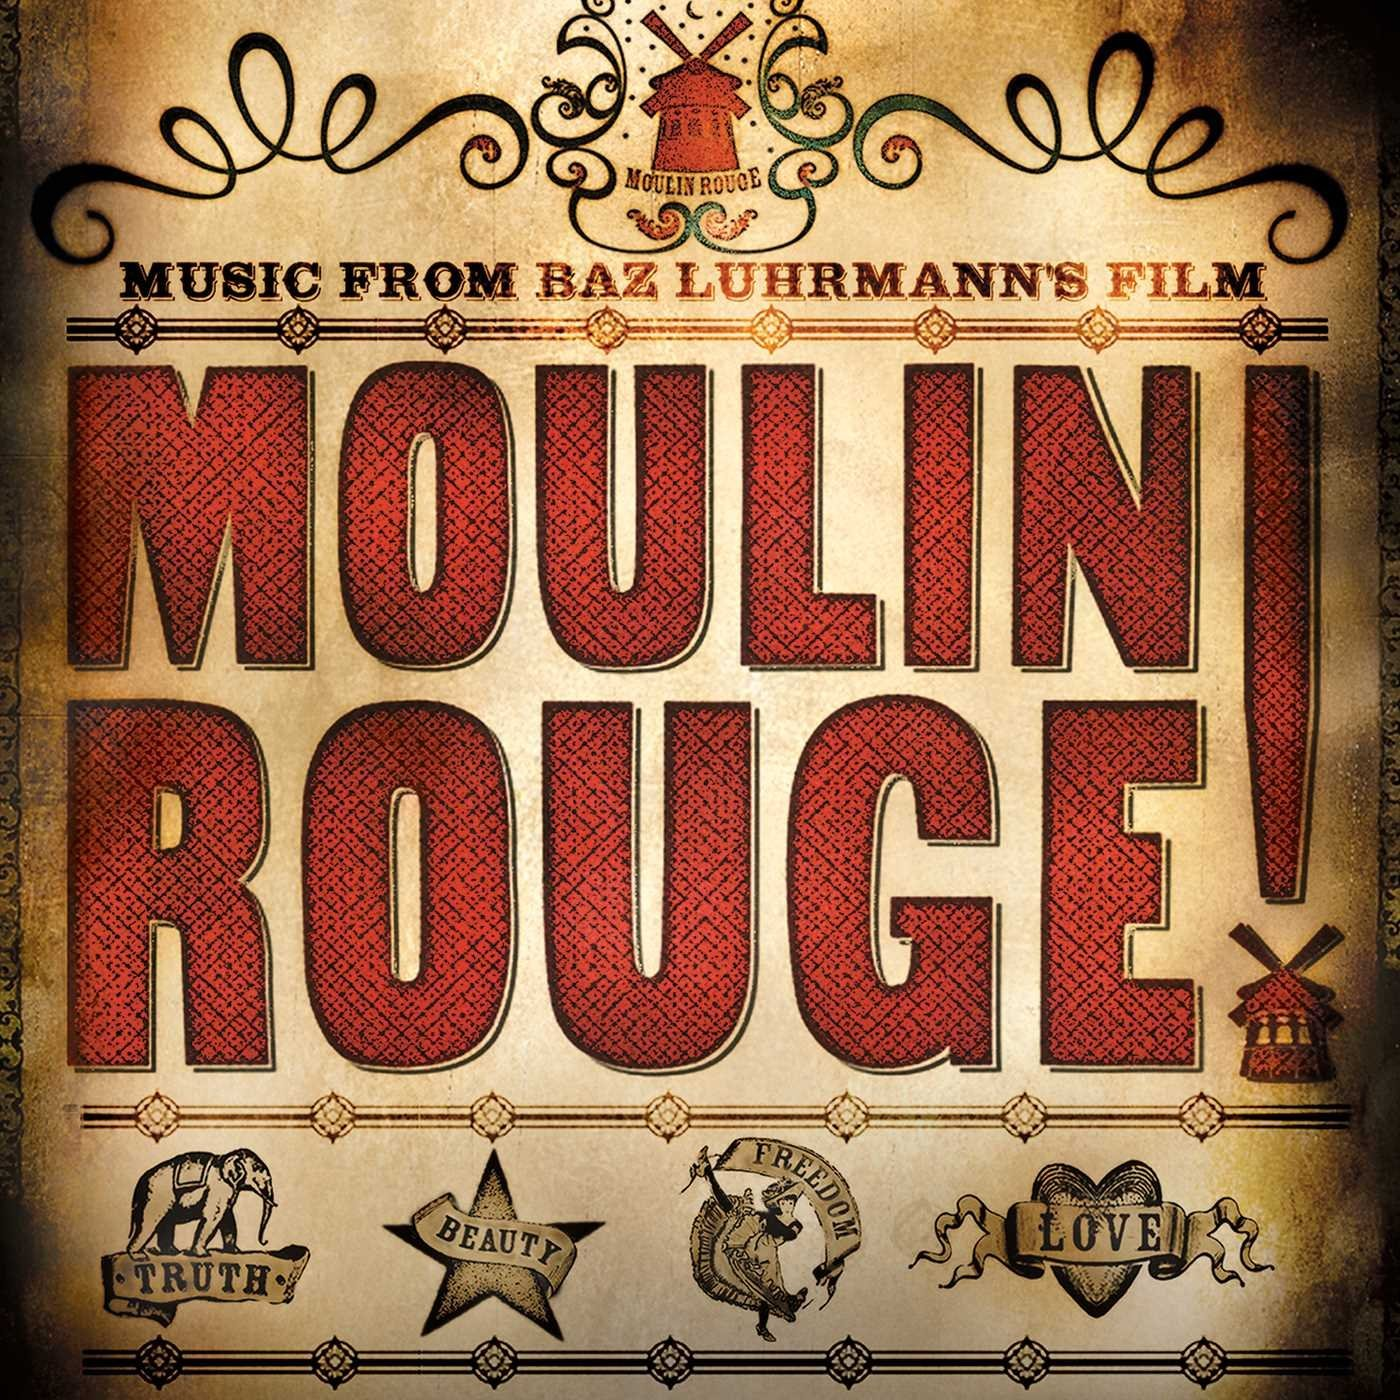 Moulin Rouge, Original Soundtrack